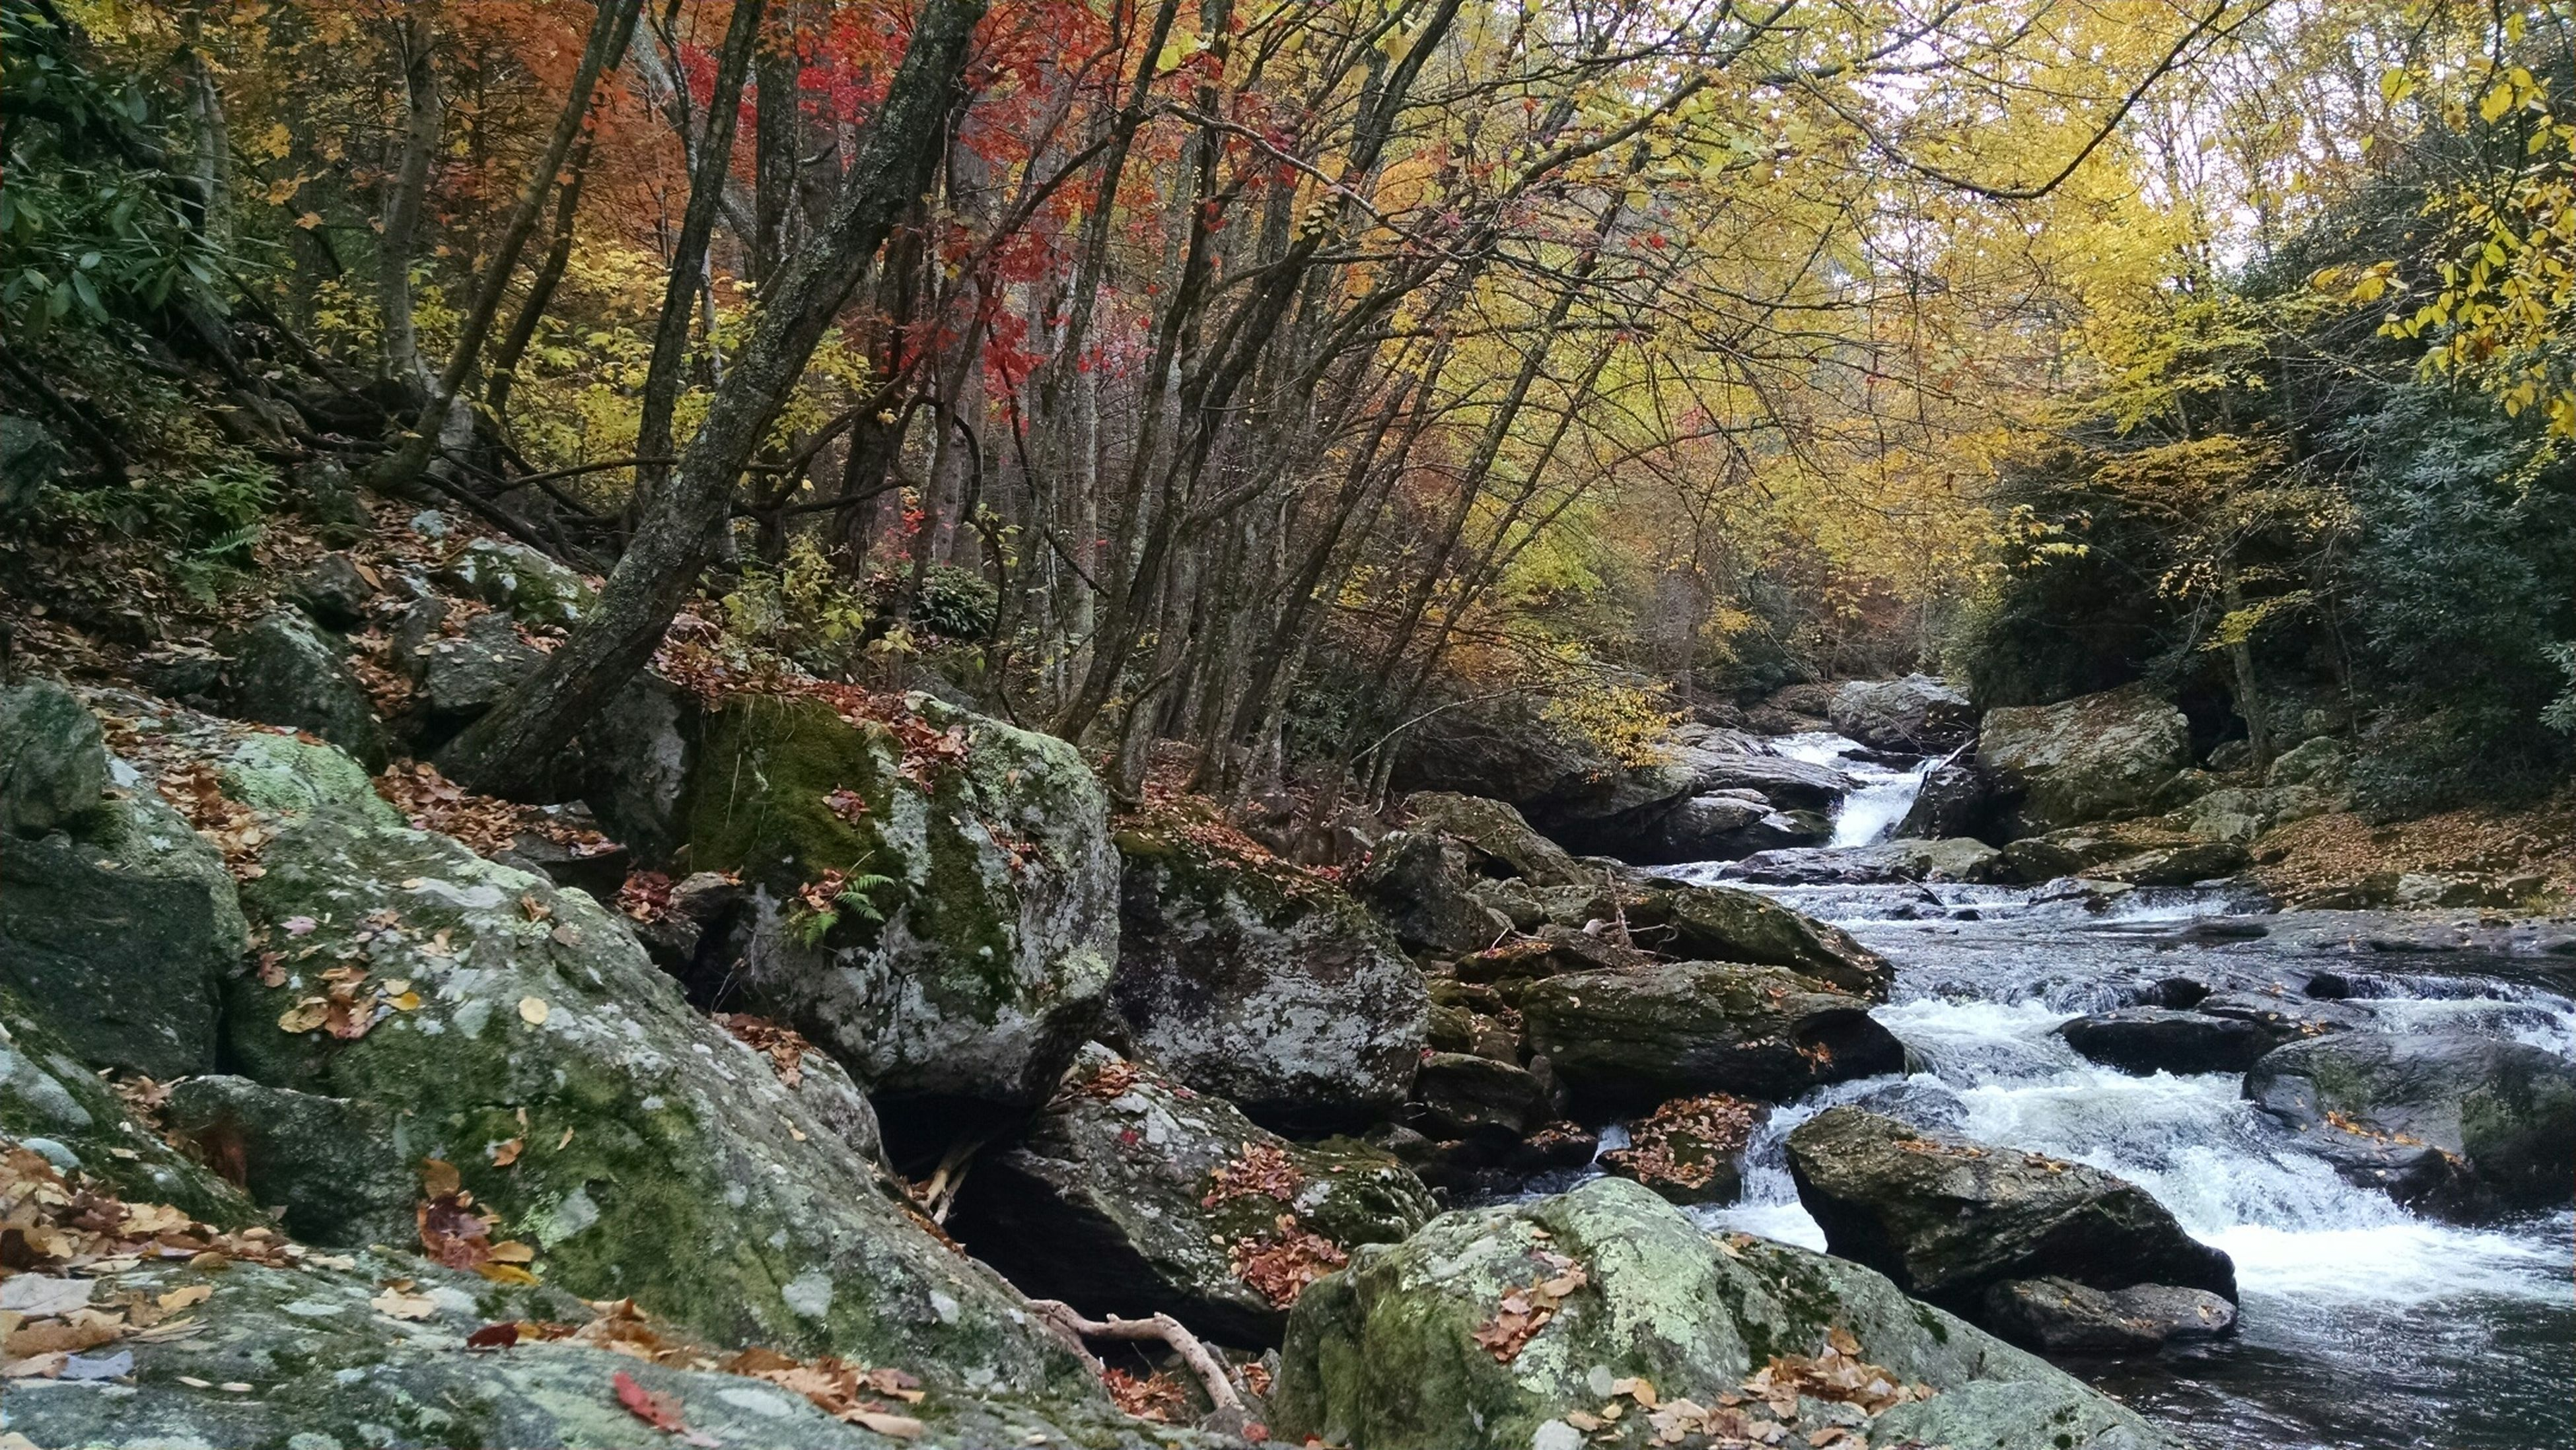 water, tree, rock - object, nature, beauty in nature, scenics, tranquility, stream, forest, tranquil scene, rock formation, rock, river, flowing water, flowing, growth, moss, day, no people, outdoors